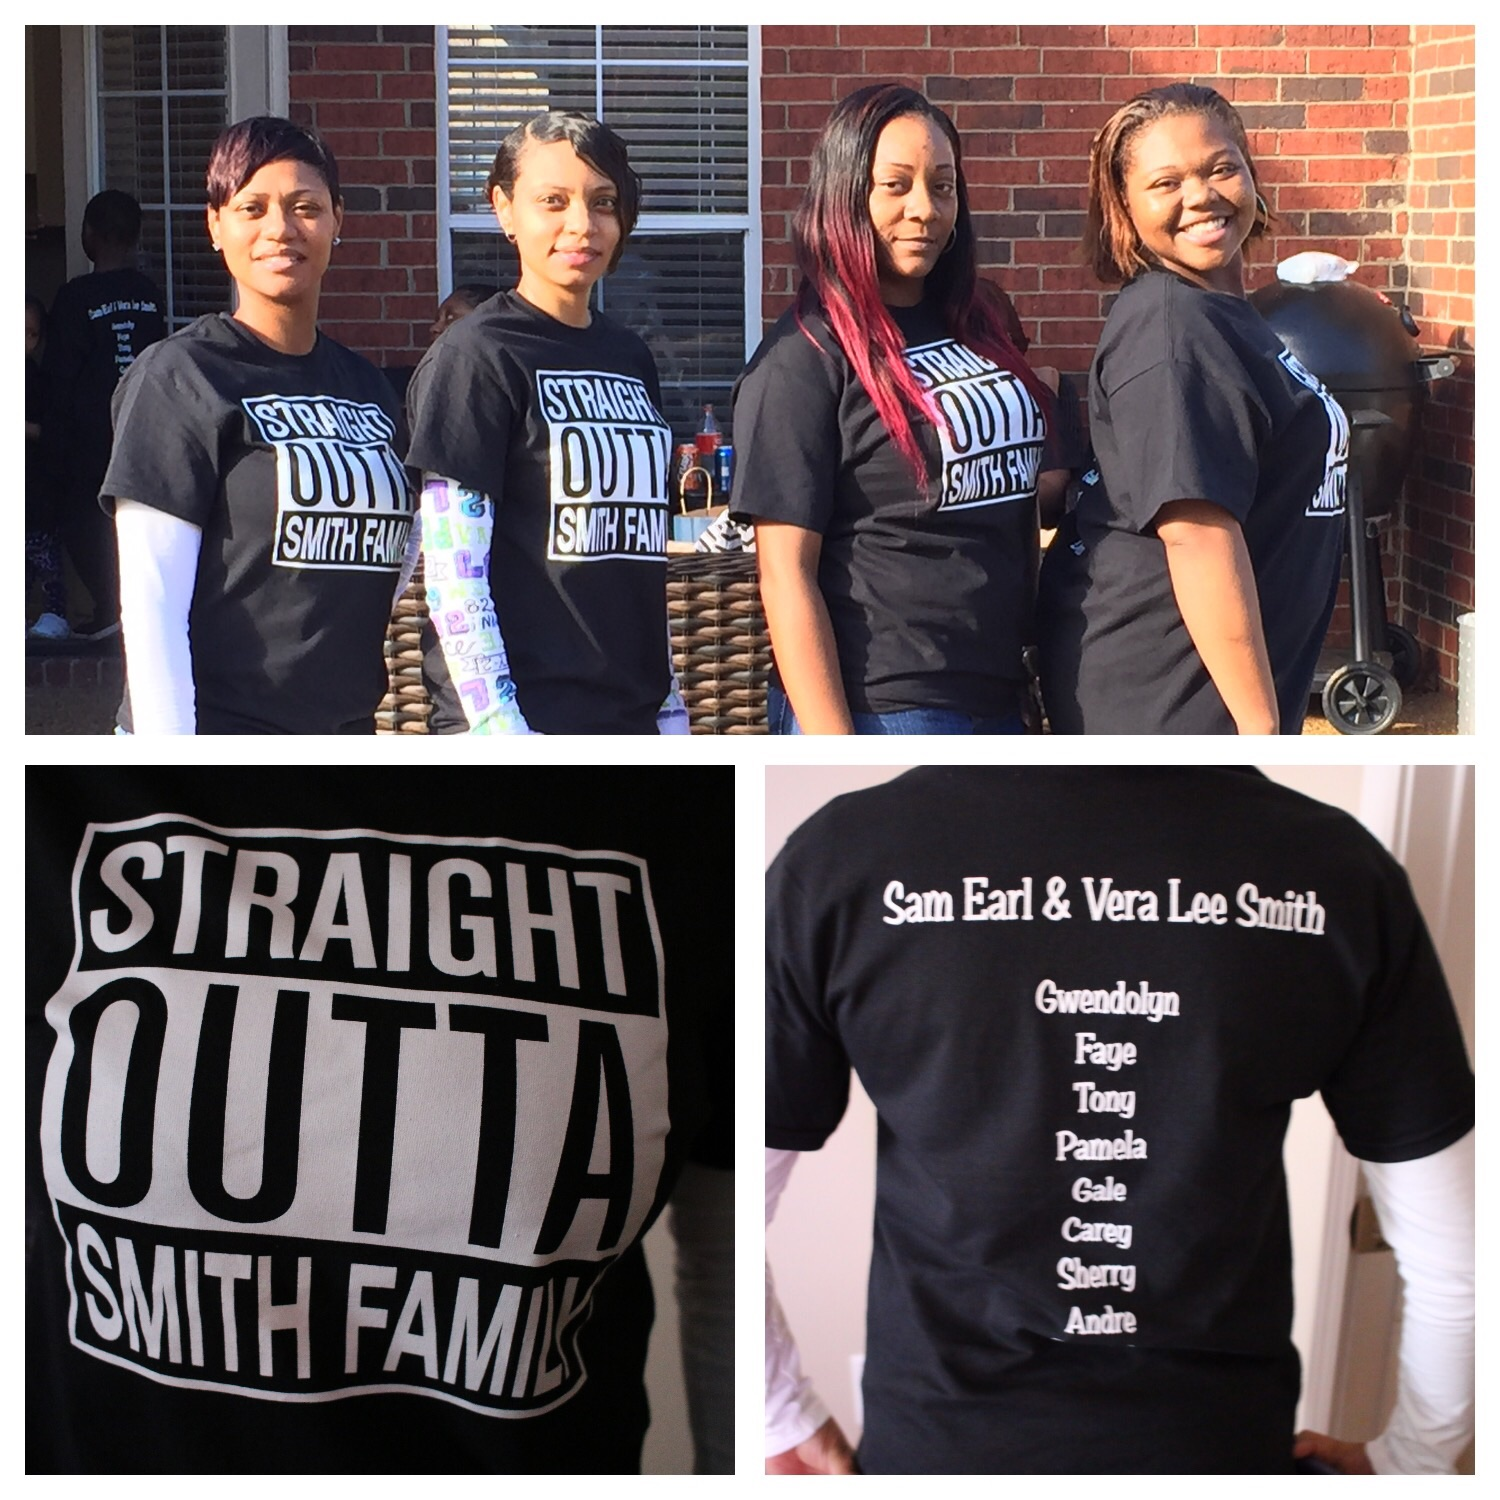 Custom T-Shirts for Straight Outta Smith Family - Shirt Design Ideas